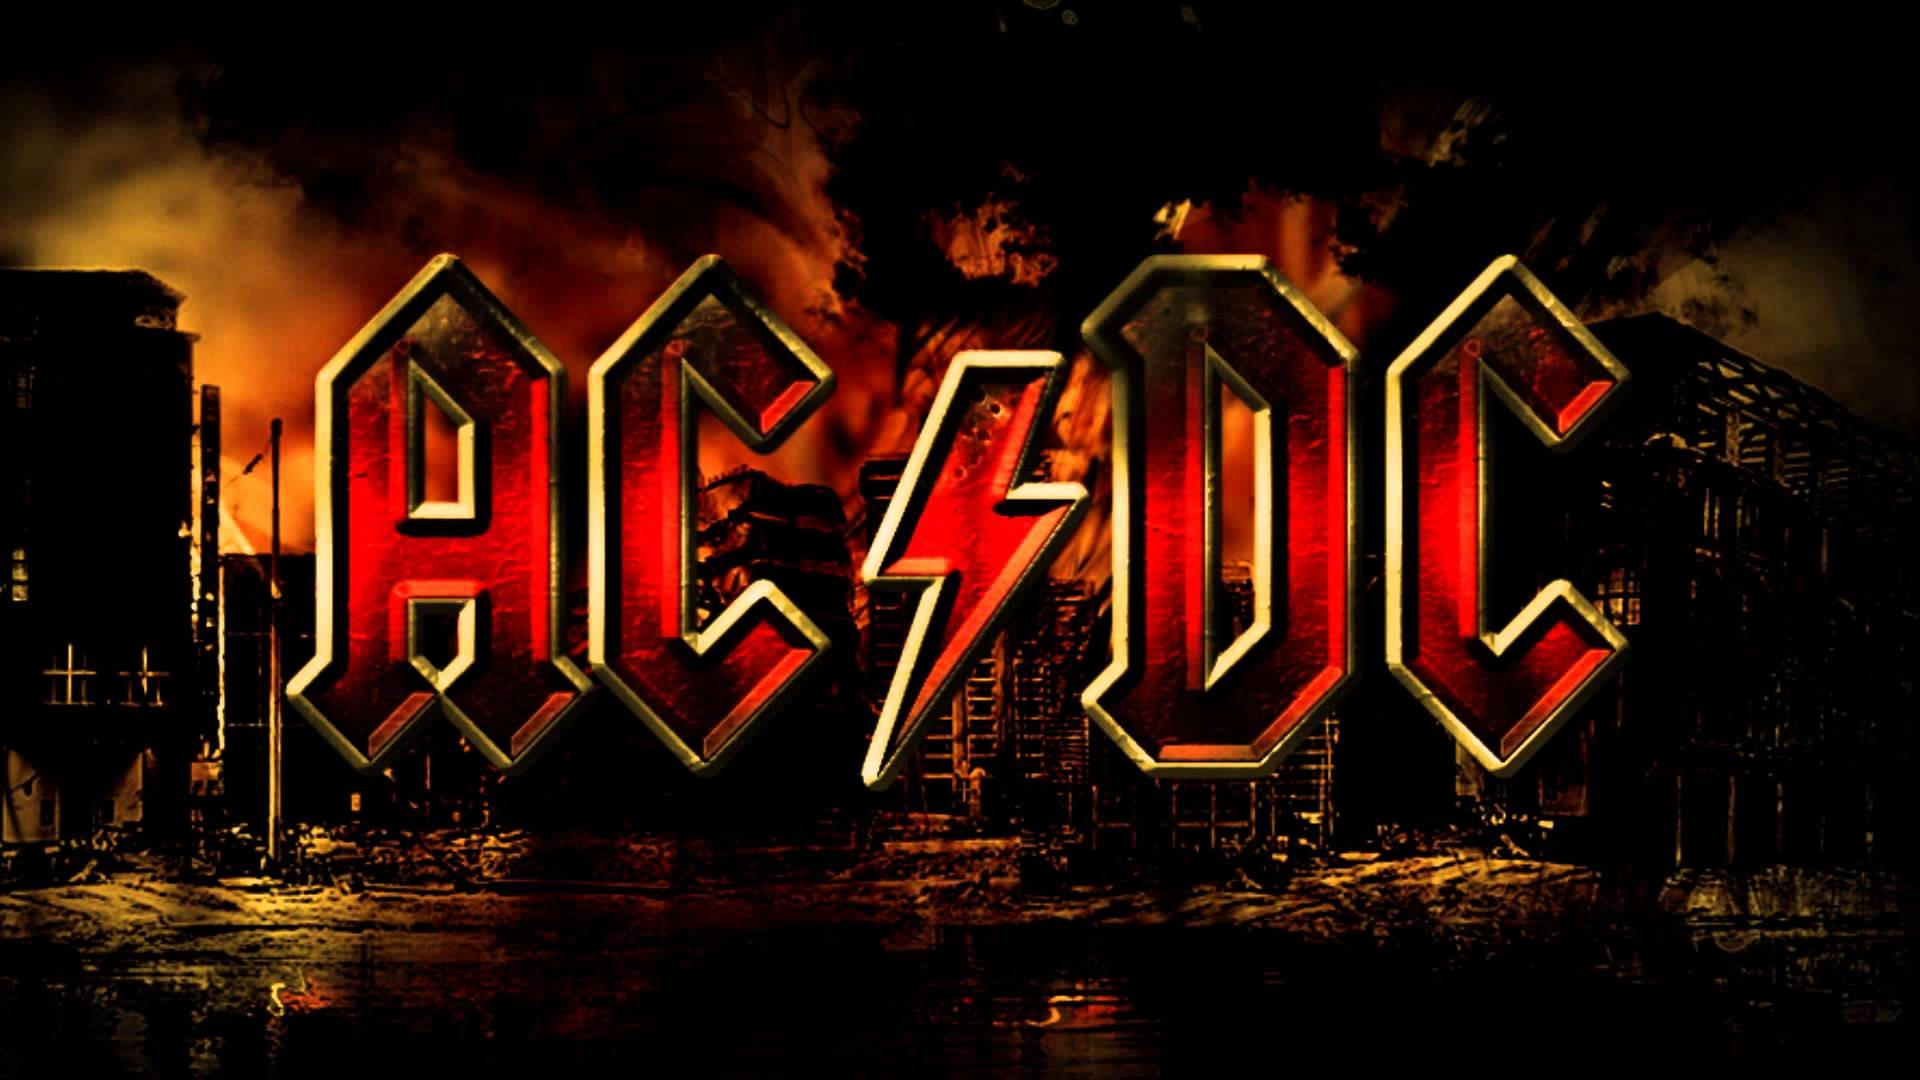 1920x1080 Music Wallpaper: Ac Dc Thunderstruck Wallpapers Phone with